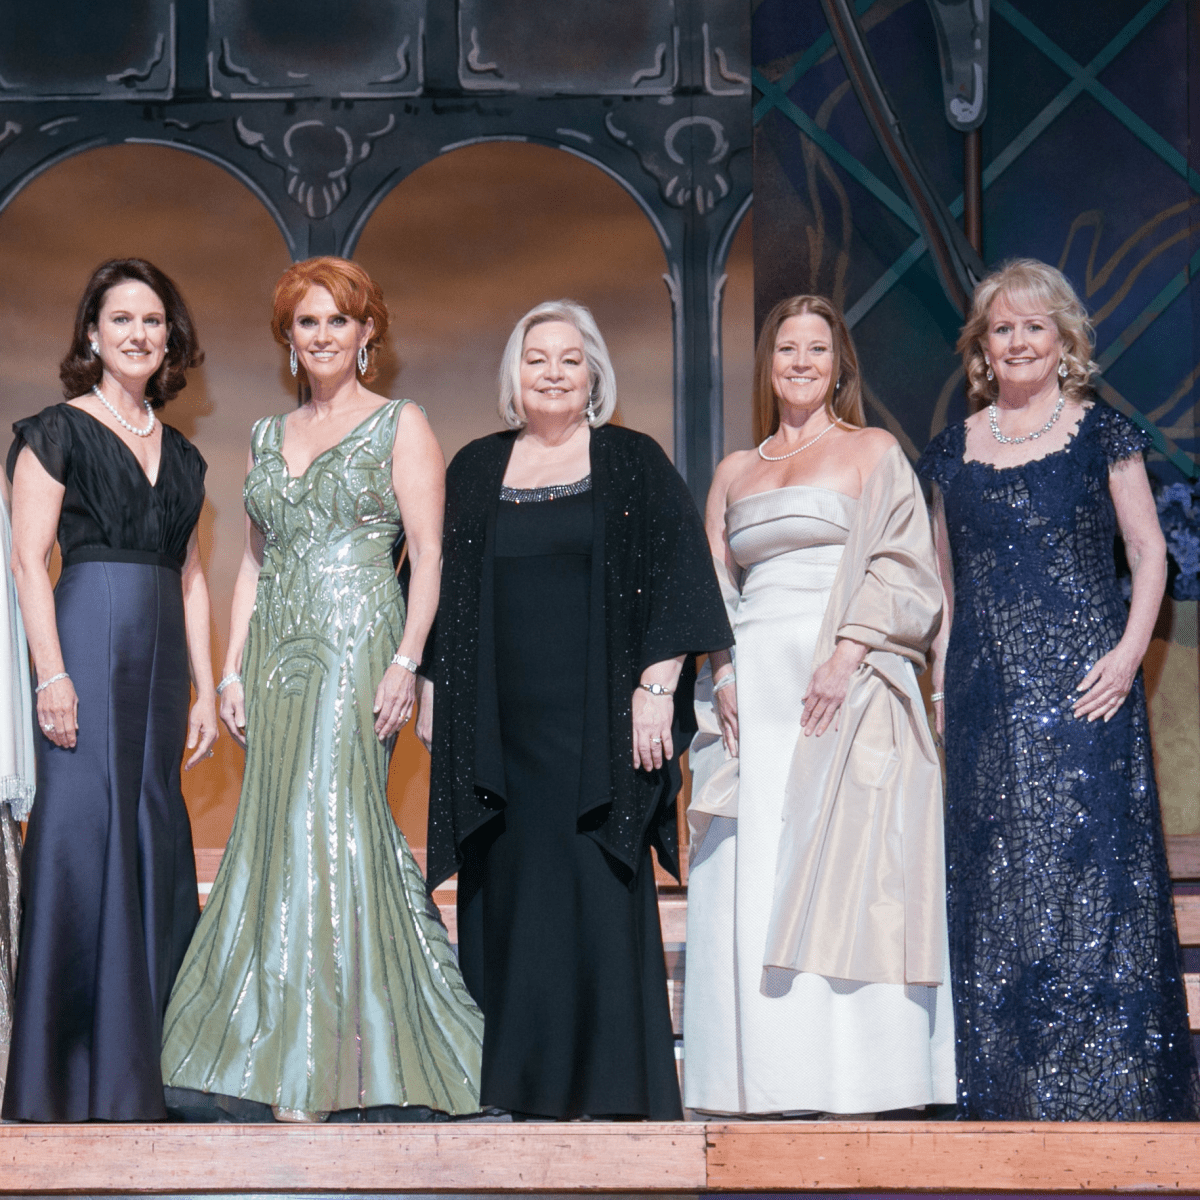 Presentation Ball Committee: Ginger Sager, Therese Rourk, Lissie Donosky, Ball Chair Jolie Humphrey, DSOL President Sandy Secor, Eleanor Bond, Dixey Arterburn